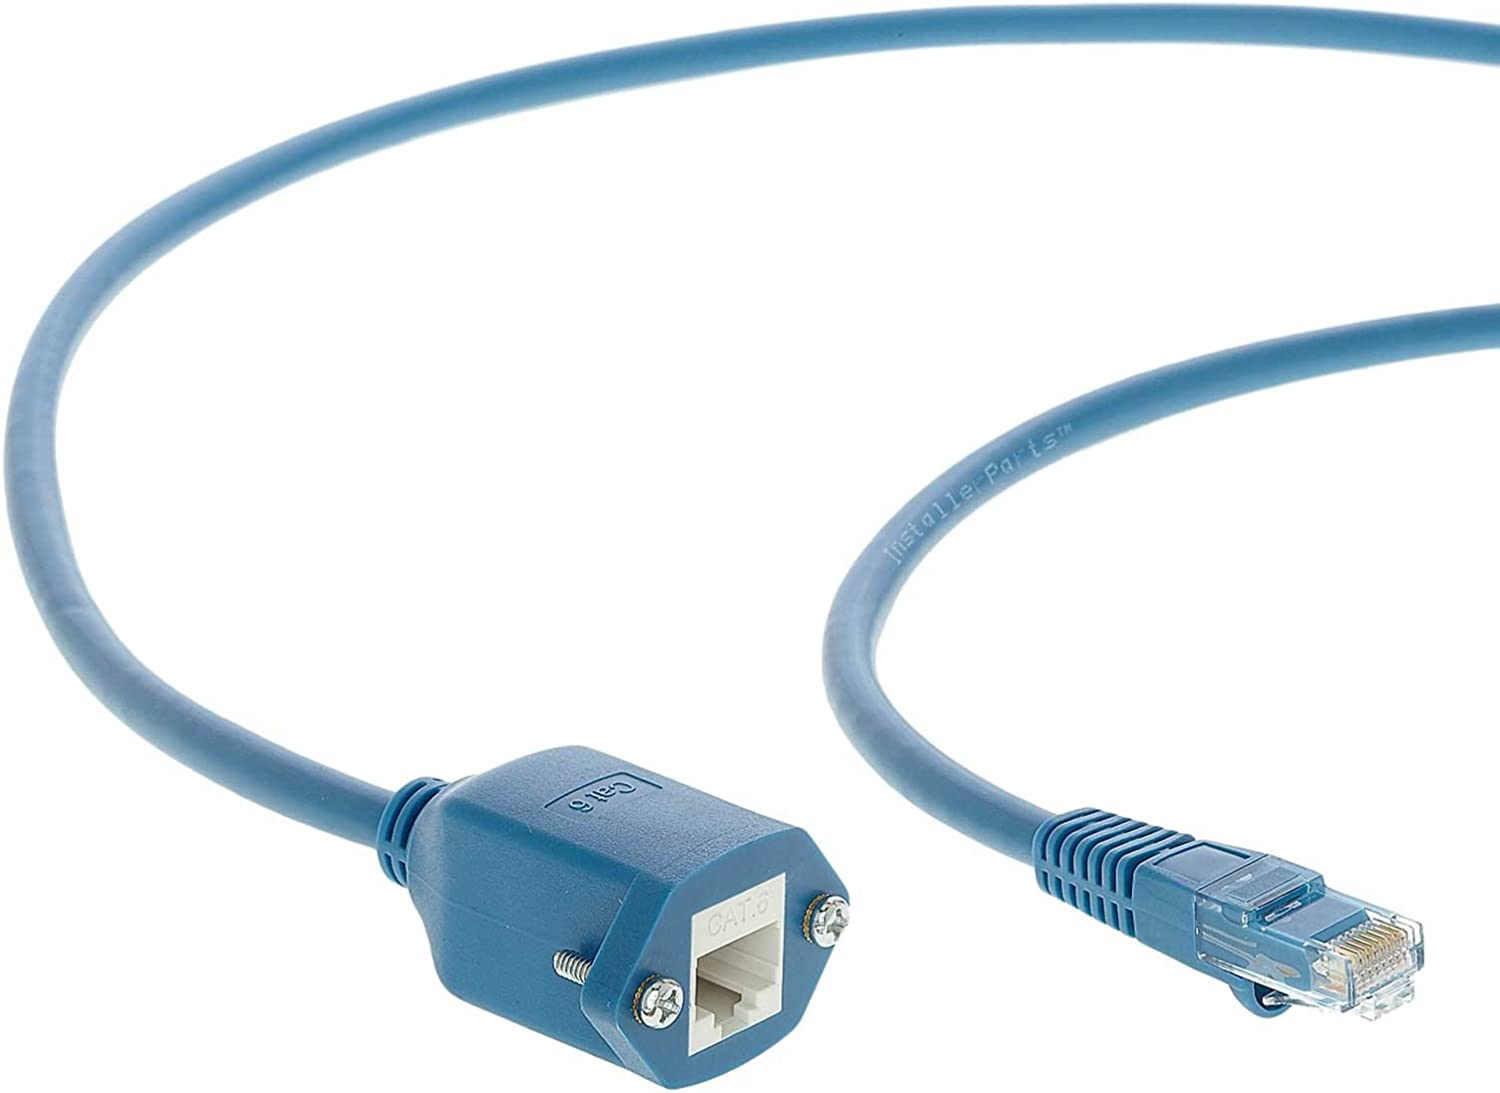 Blue 550MHZ 10Gigabit//Sec Network//High Speed Internet Cable Ethernet Cable CAT6 Cable Panel-Mount 4 FT Professional Series 5 Pack InstallerParts